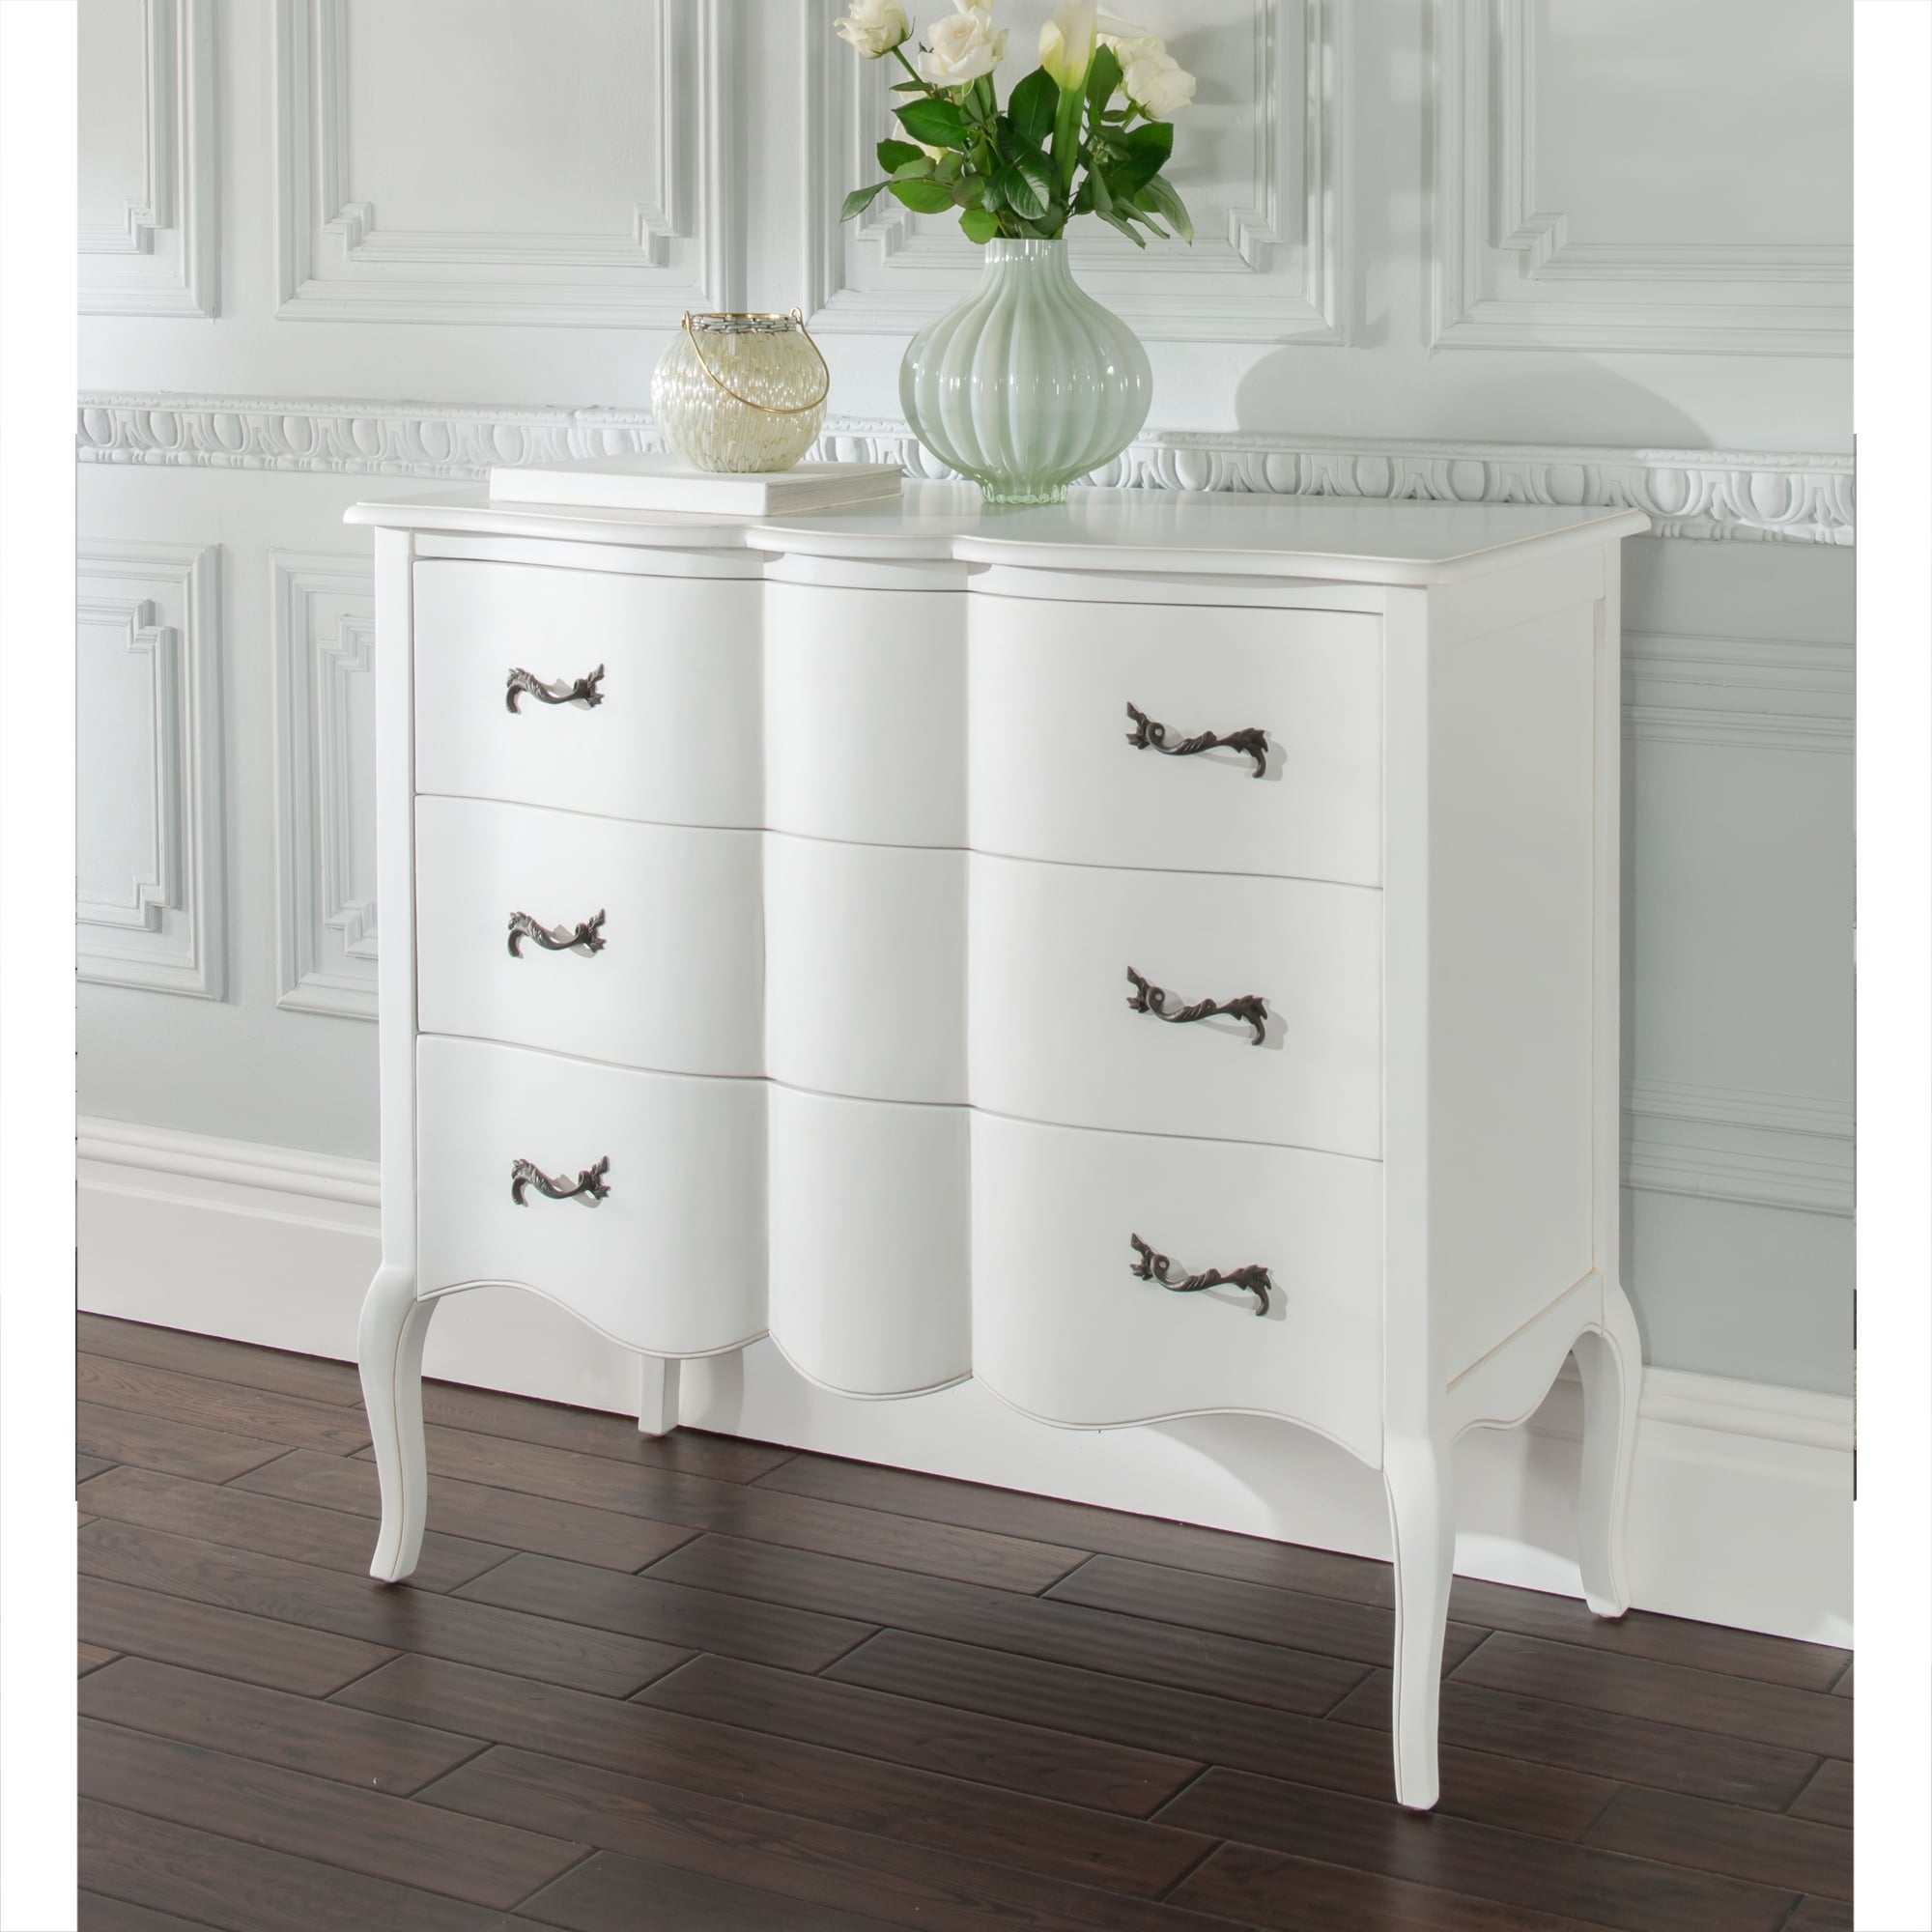 Estelle Antique French Style Chest Of Drawers Homesdirect365